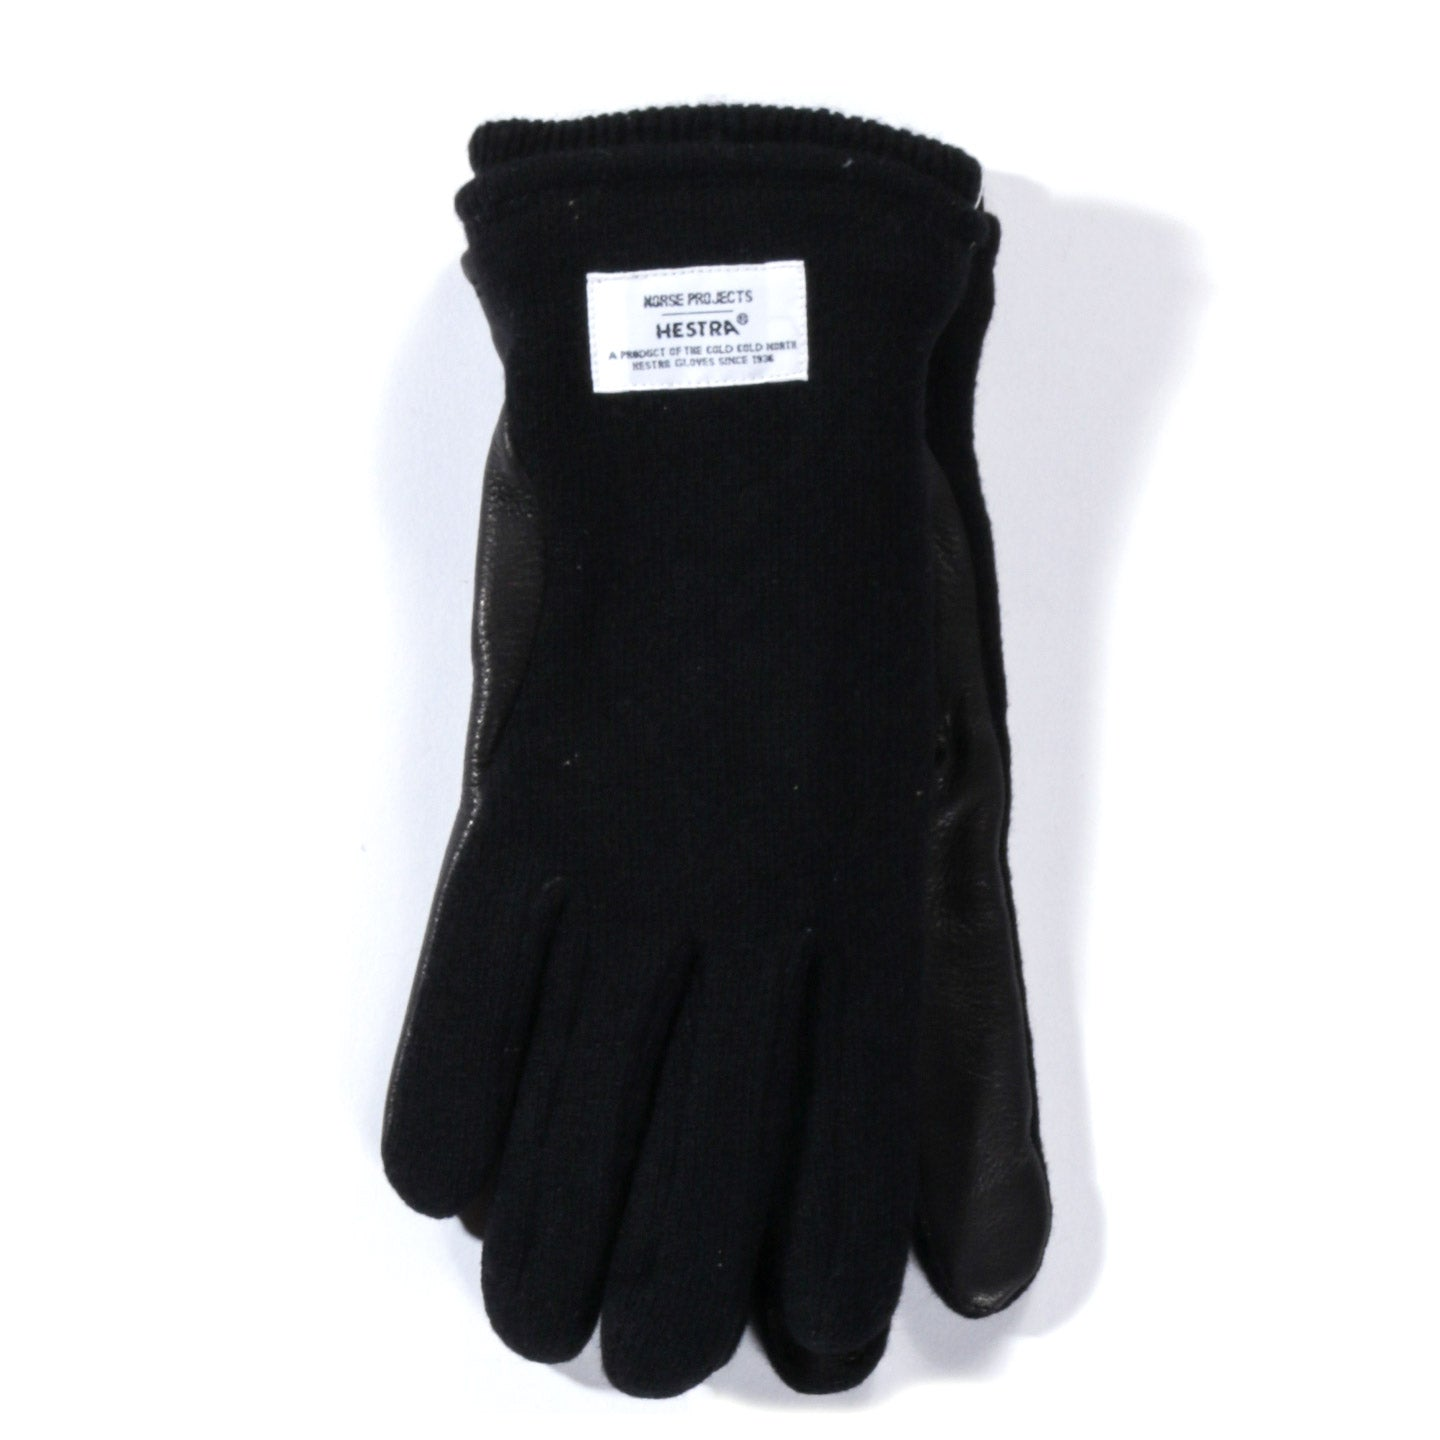 NORSE PROJECTS HESTRA SVANTE GLOVES BLACK